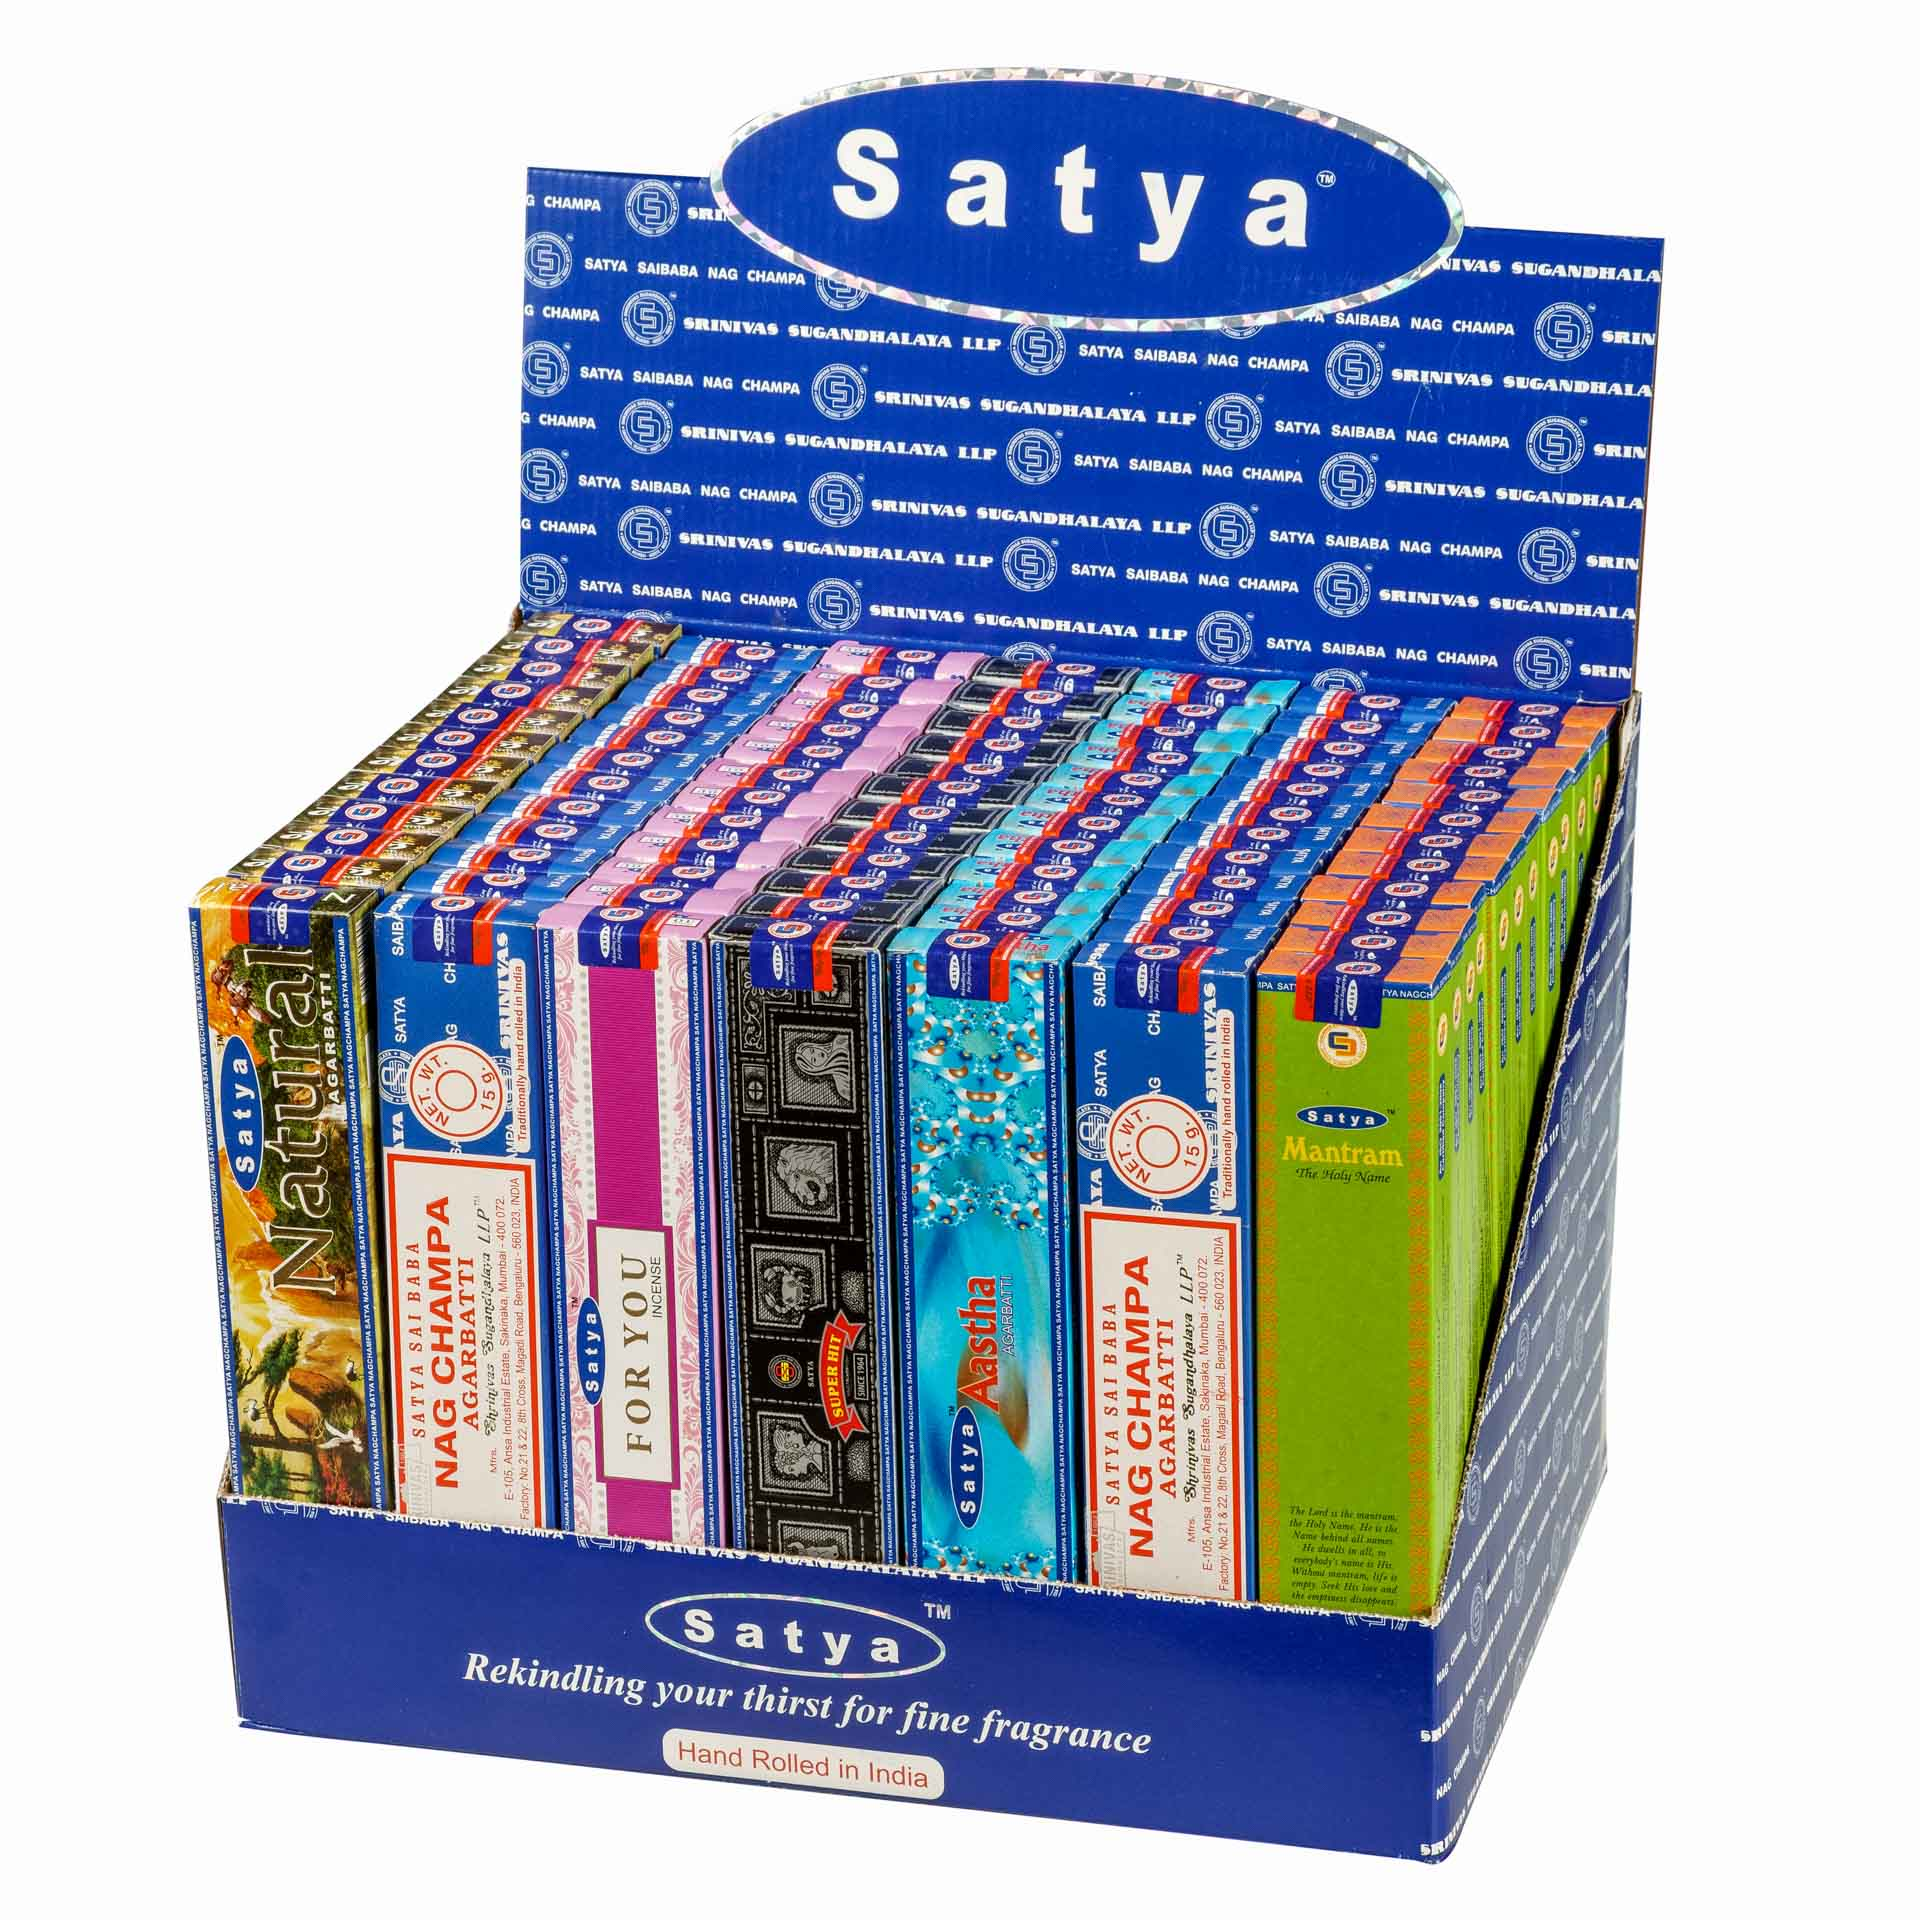 Satya Popular Series display